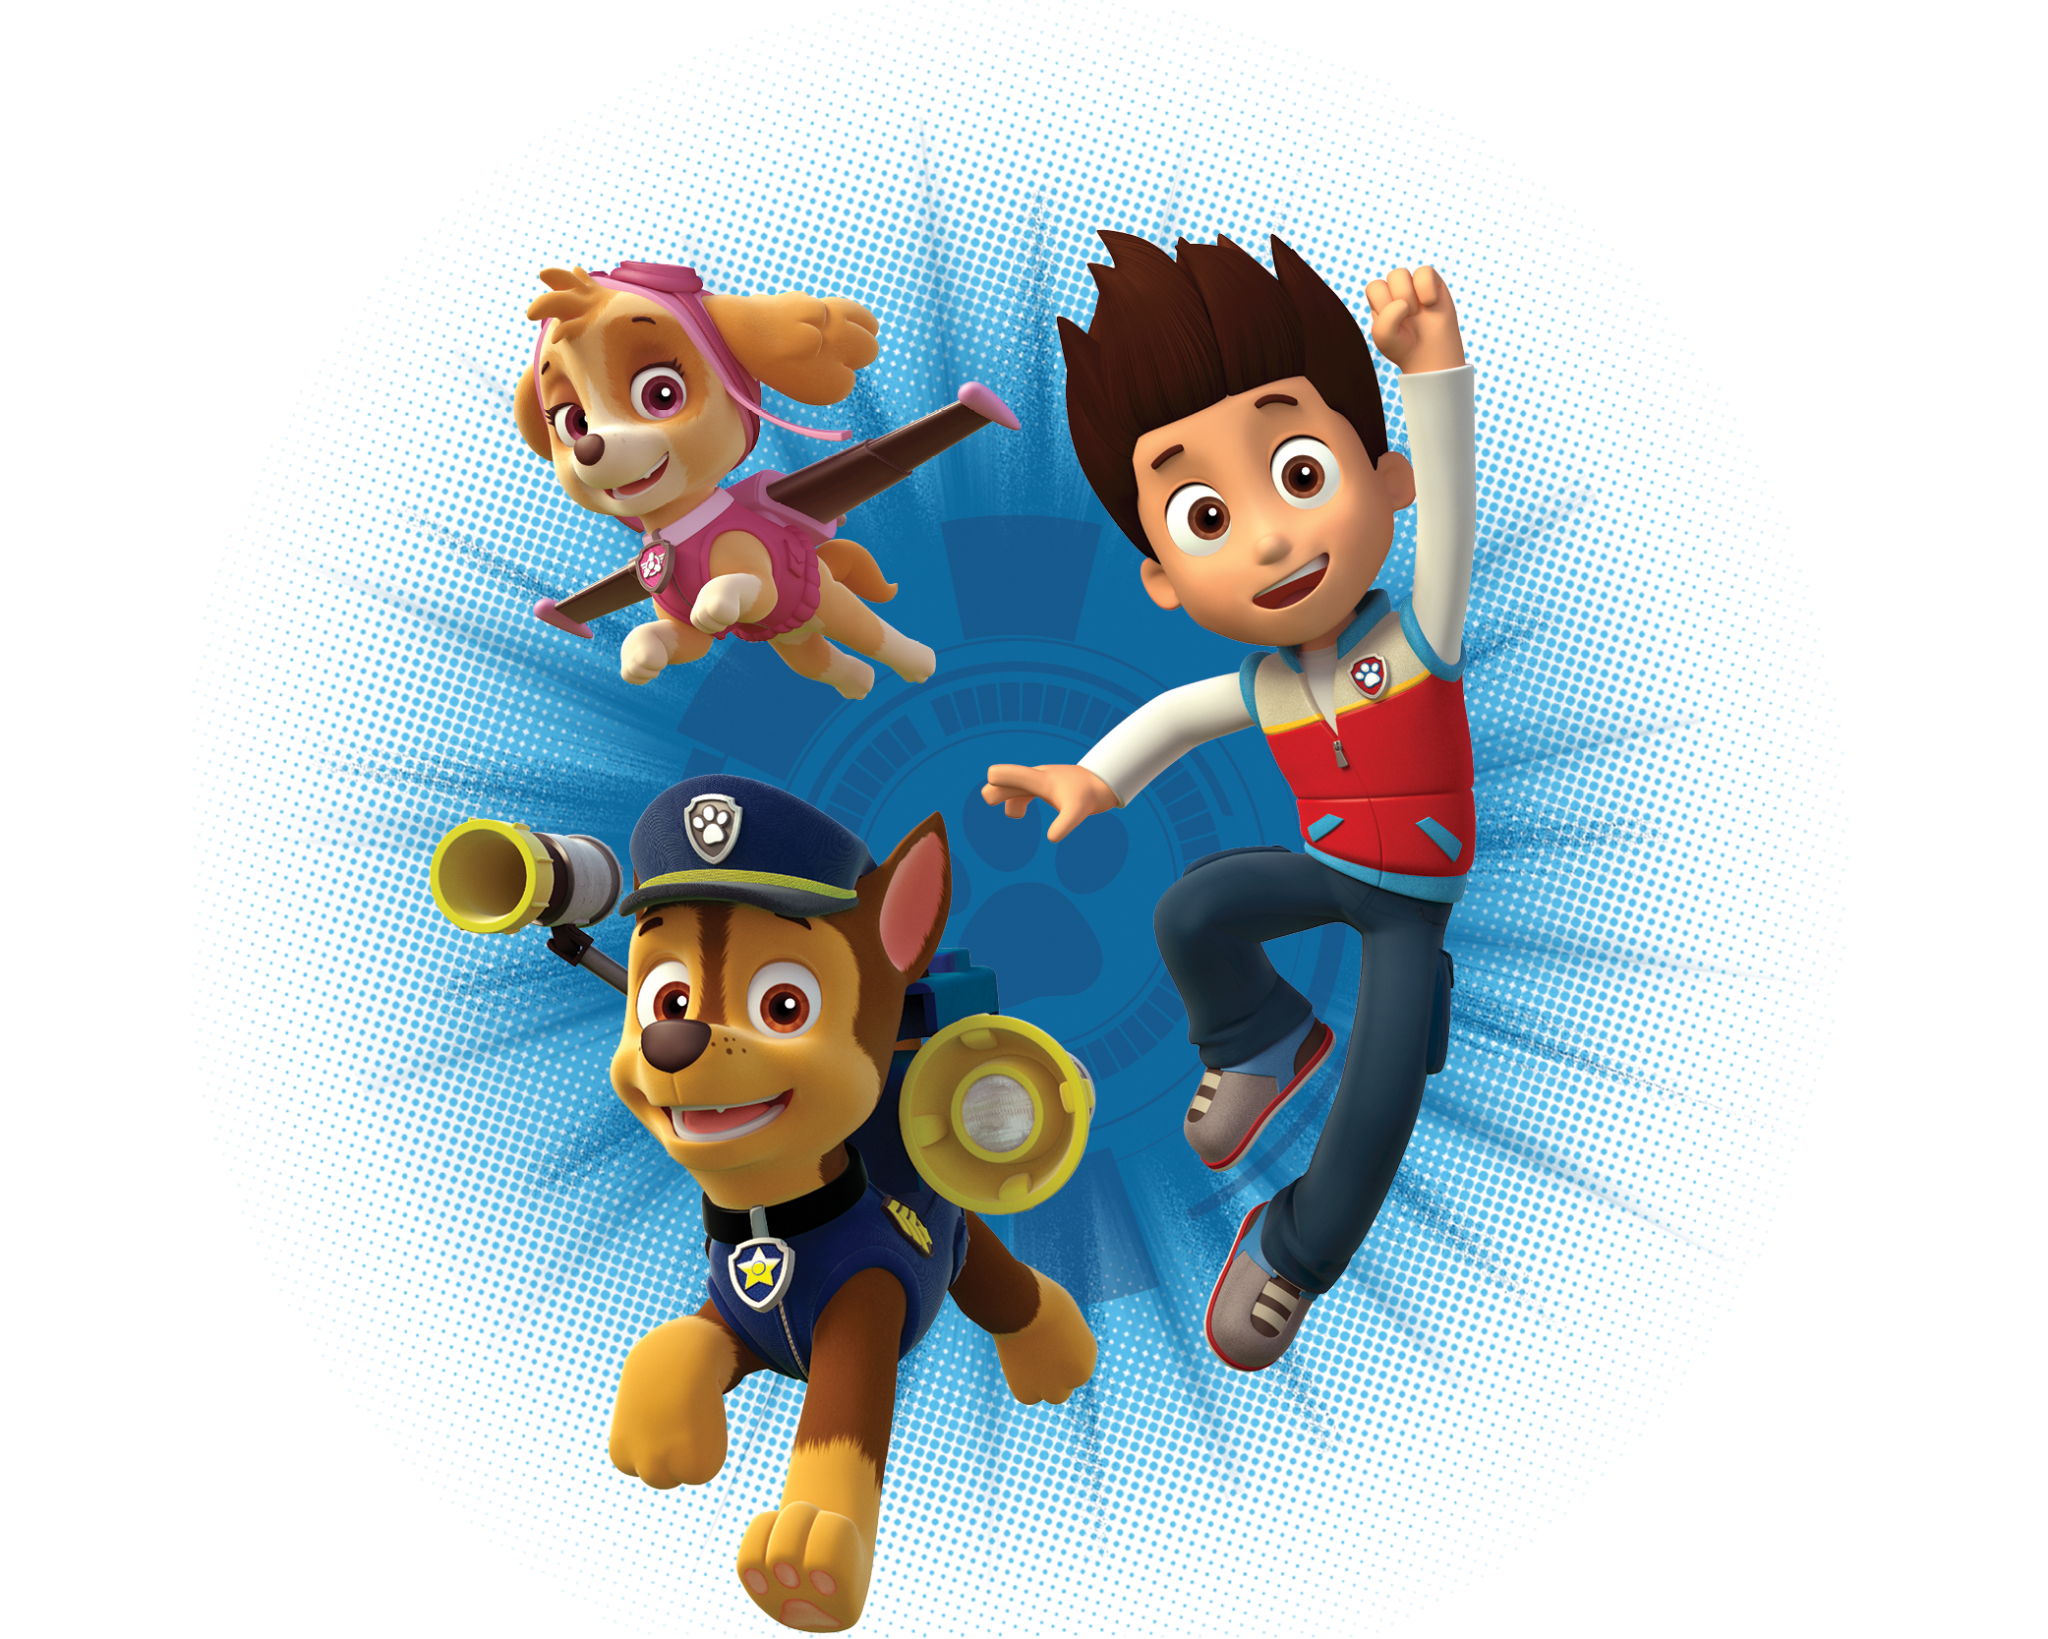 Ryder paw patrol png. Live tickets for shawinigan